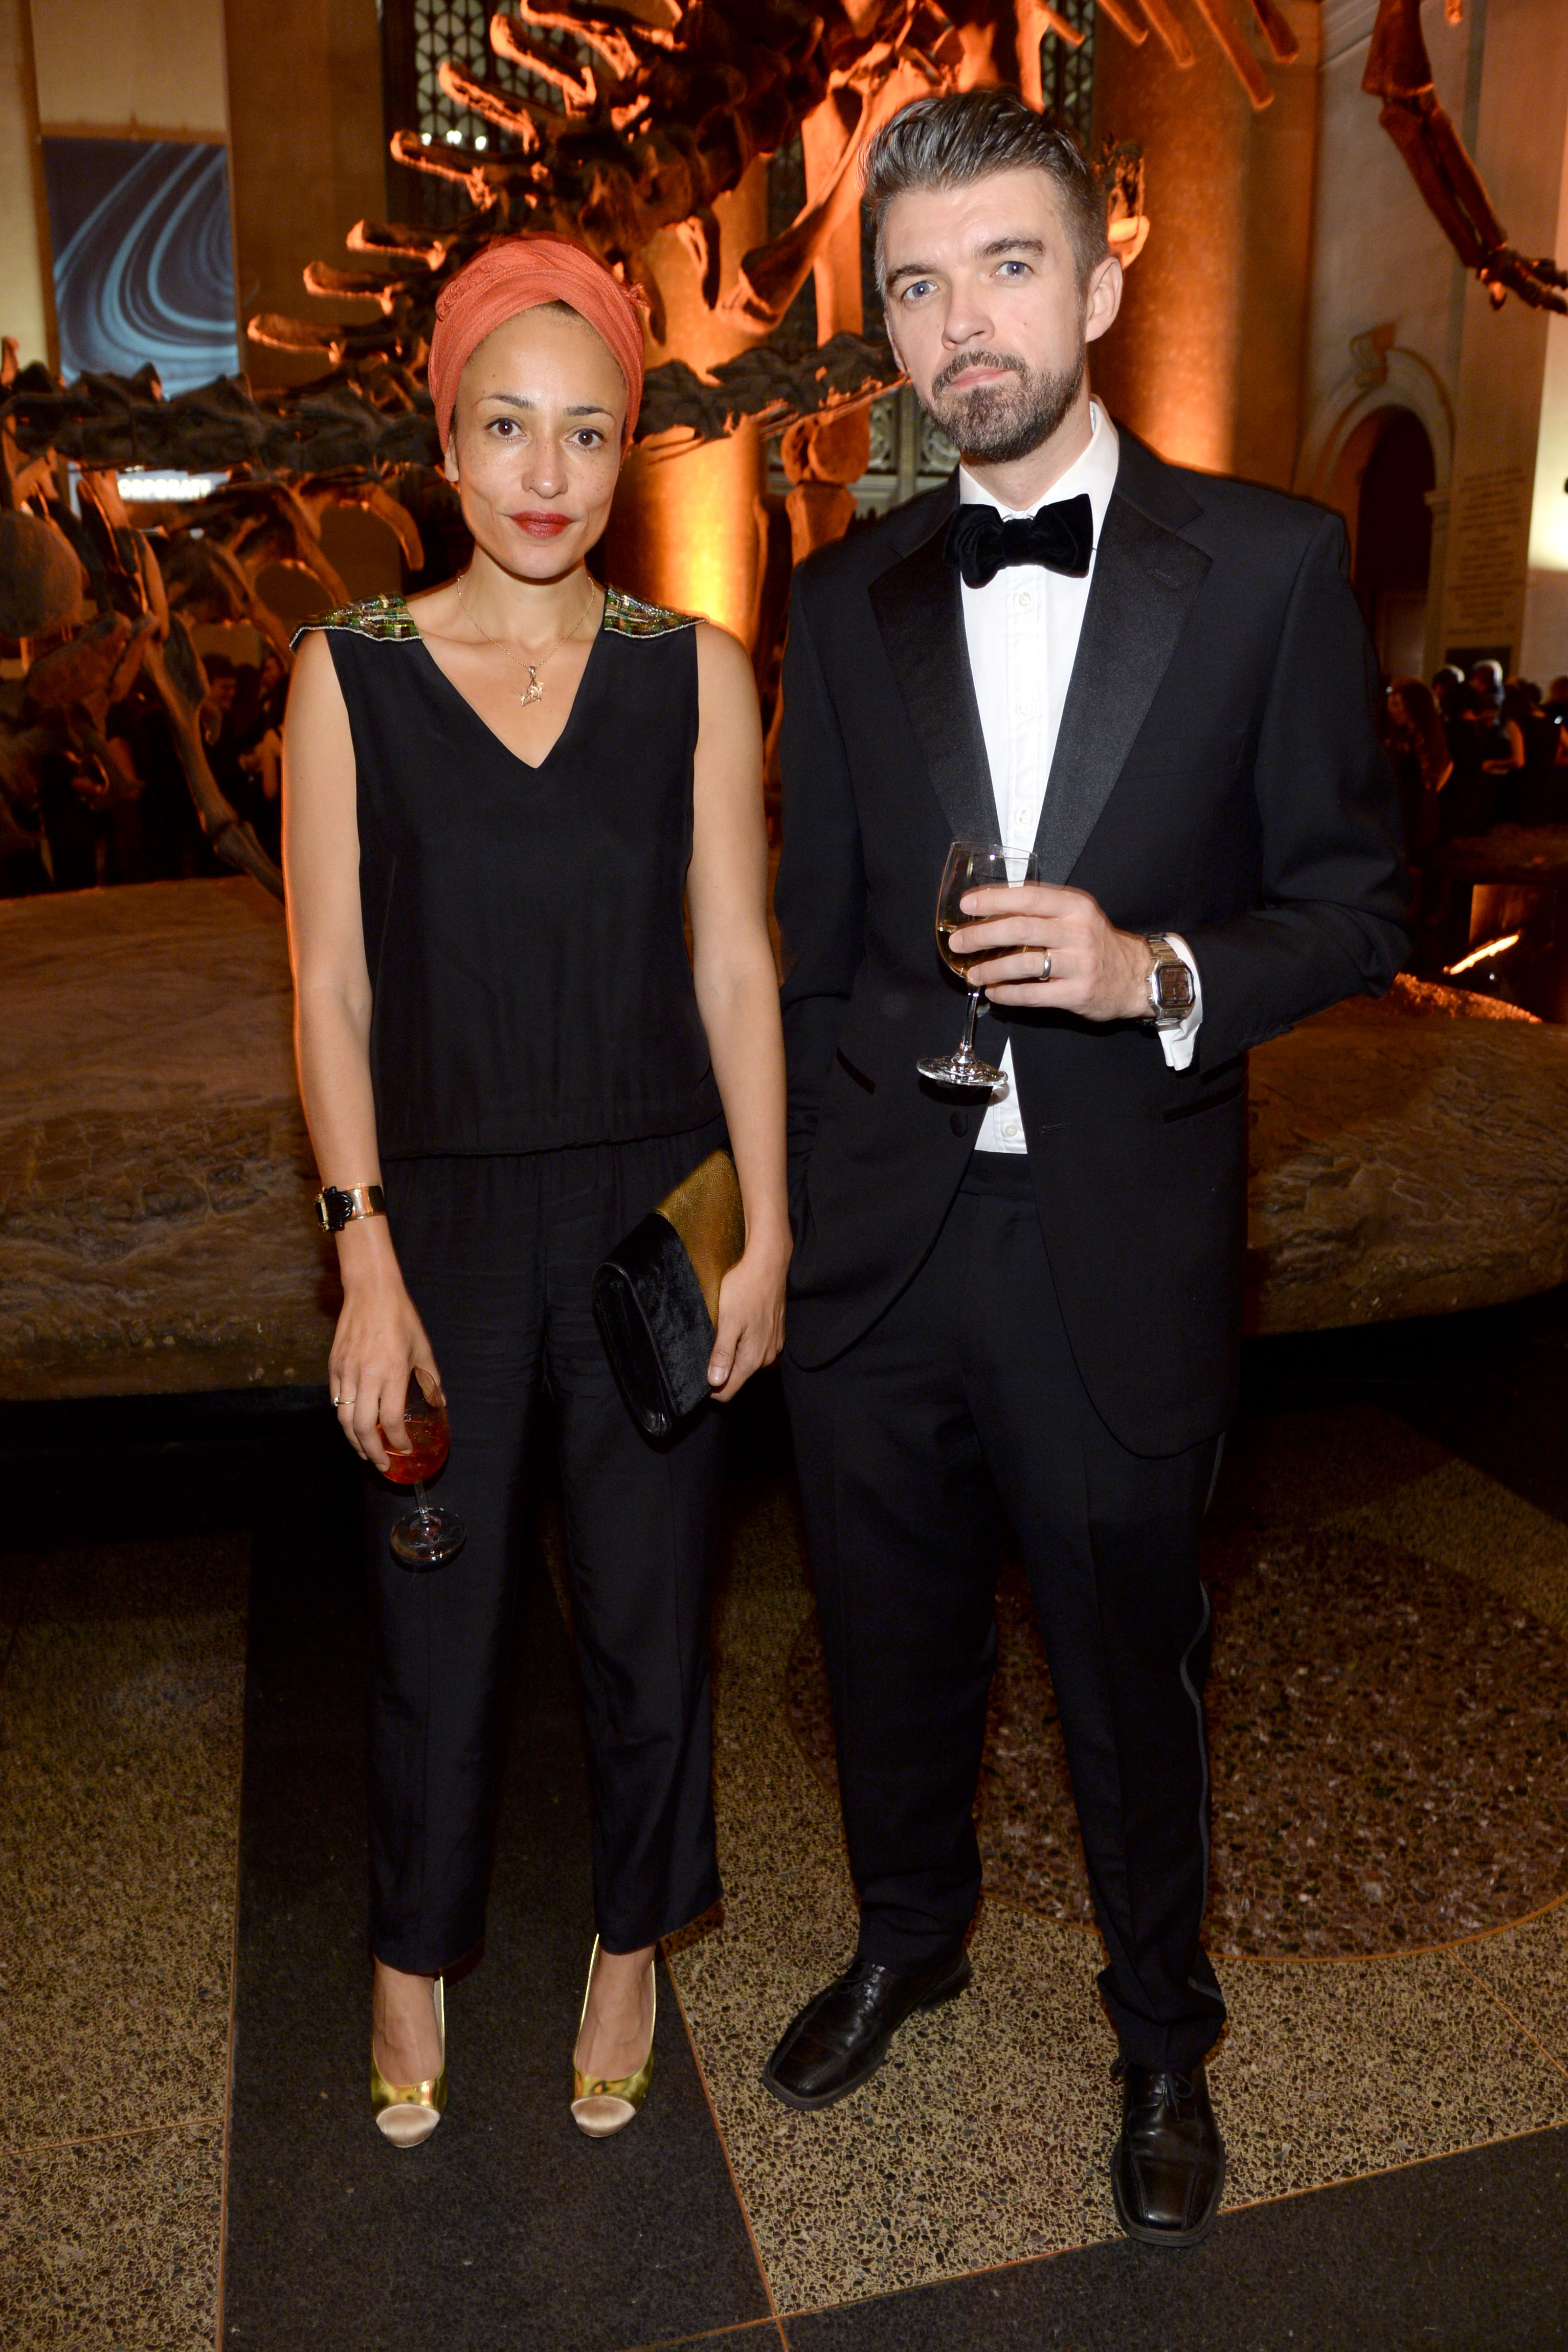 The couple at the American Museum of Natural History gala. (Photo by Clint Spaulding/PatrickMcMullan.com)